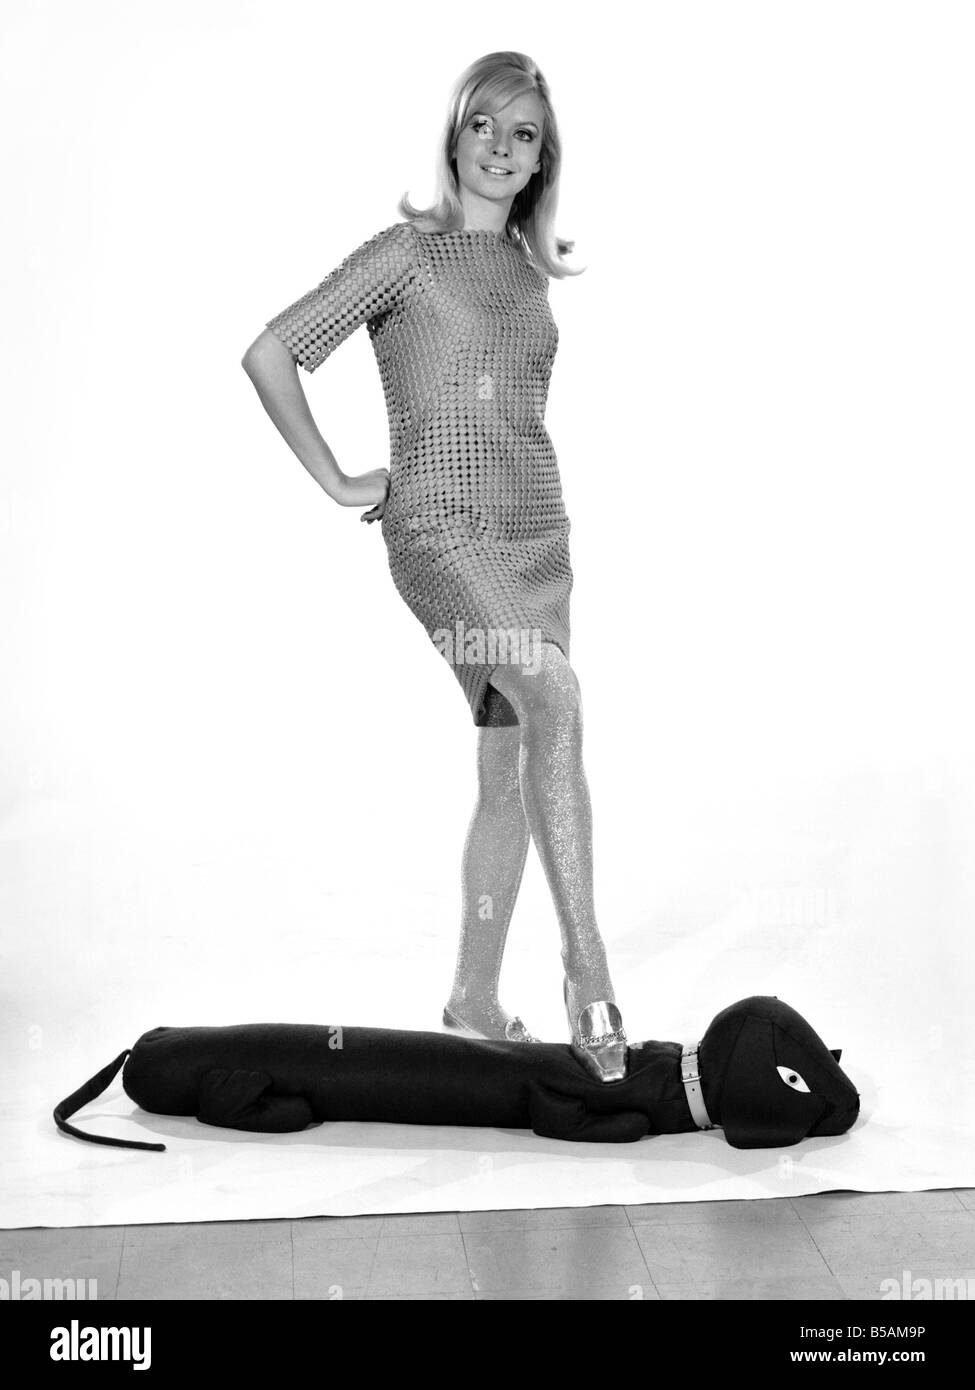 Model Anna Maria Greaves with Roly dog soft toy and draft excluder. 1959 D169-006 - Stock Image